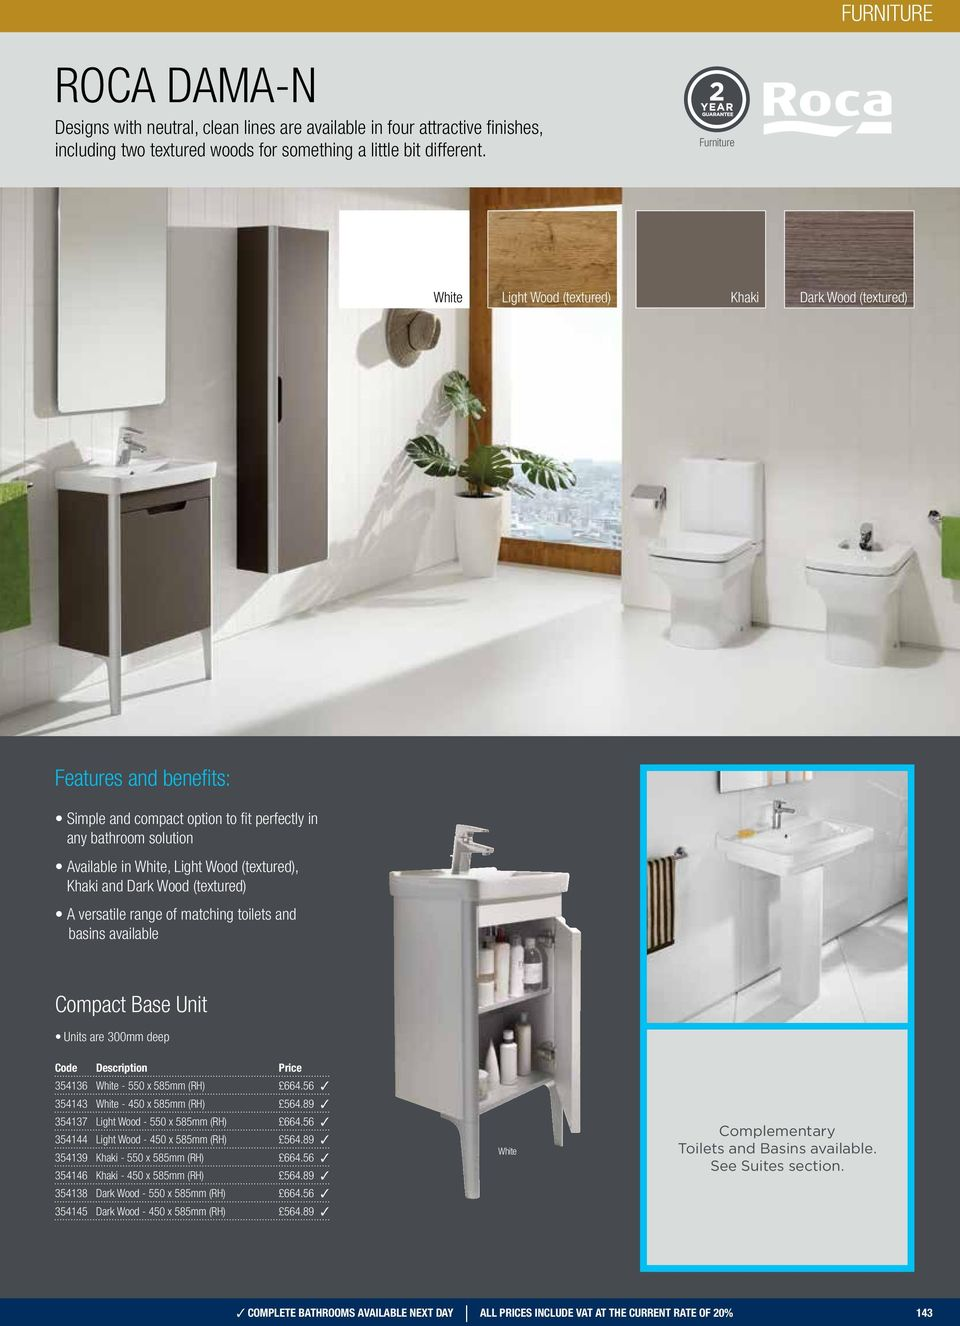 Dark Wood (textured) A versatile range of matching toilets and basins available Compact Units are 300mm deep 354136 White - 550 x 585mm (RH) 664.56 354143 White - 450 x 585mm (RH) 564.